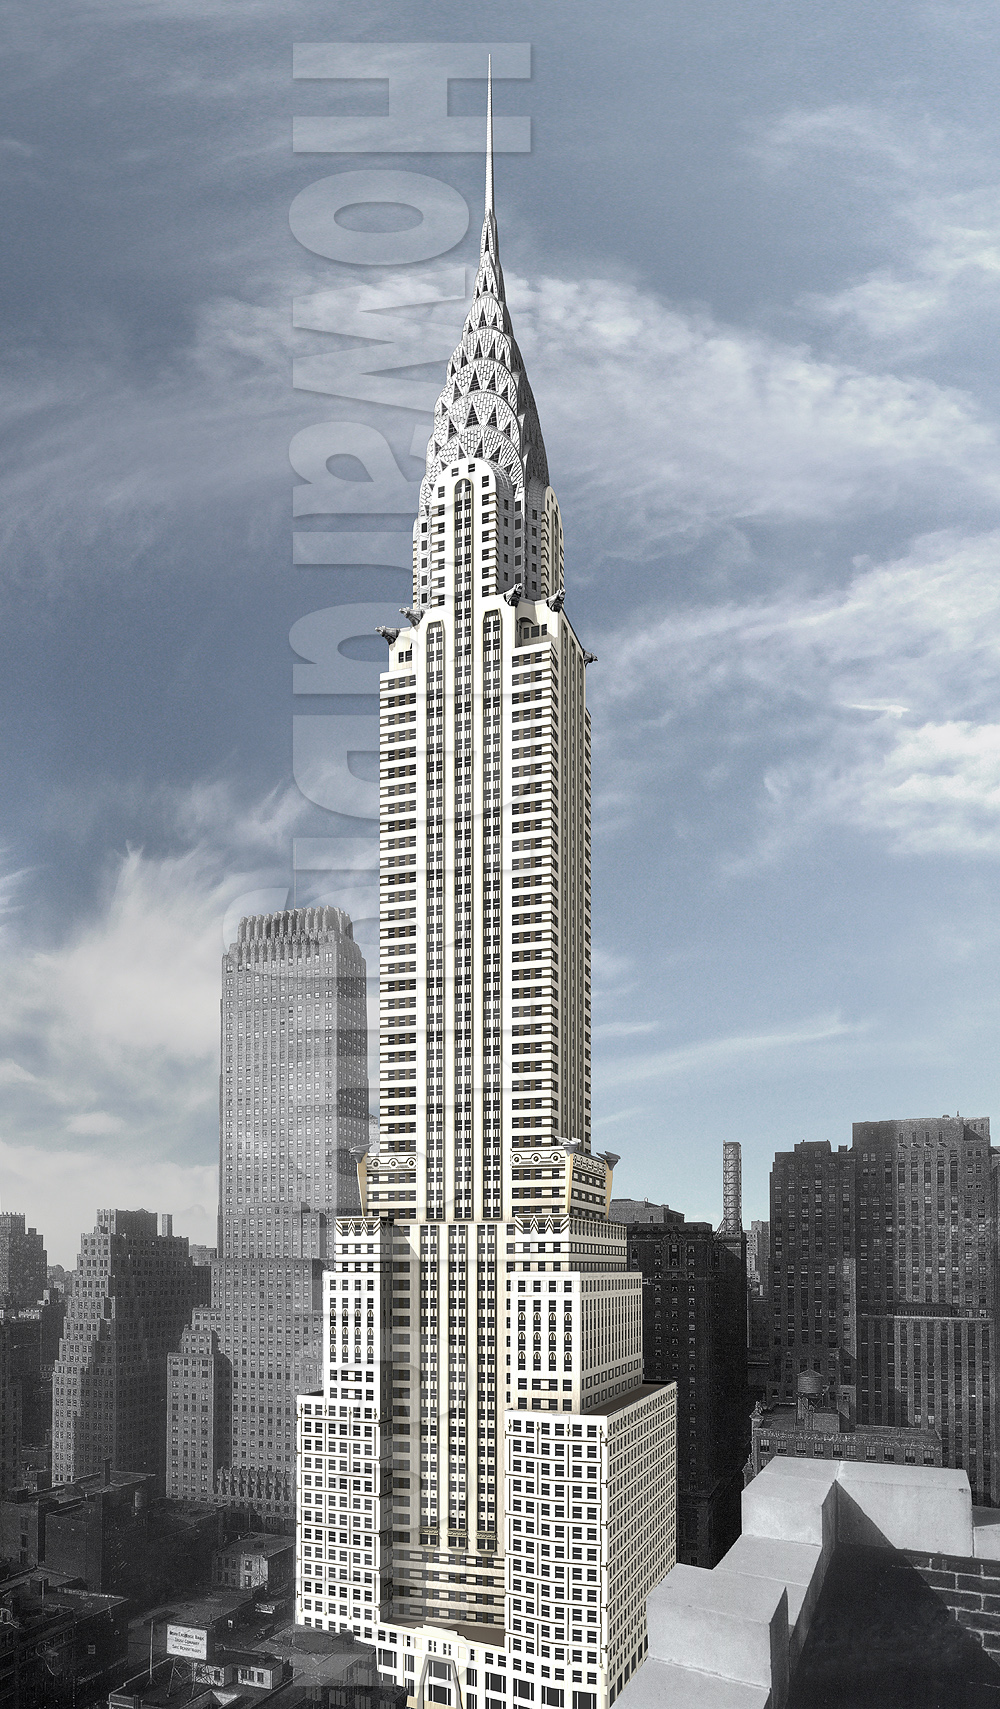 King kong chrysler building